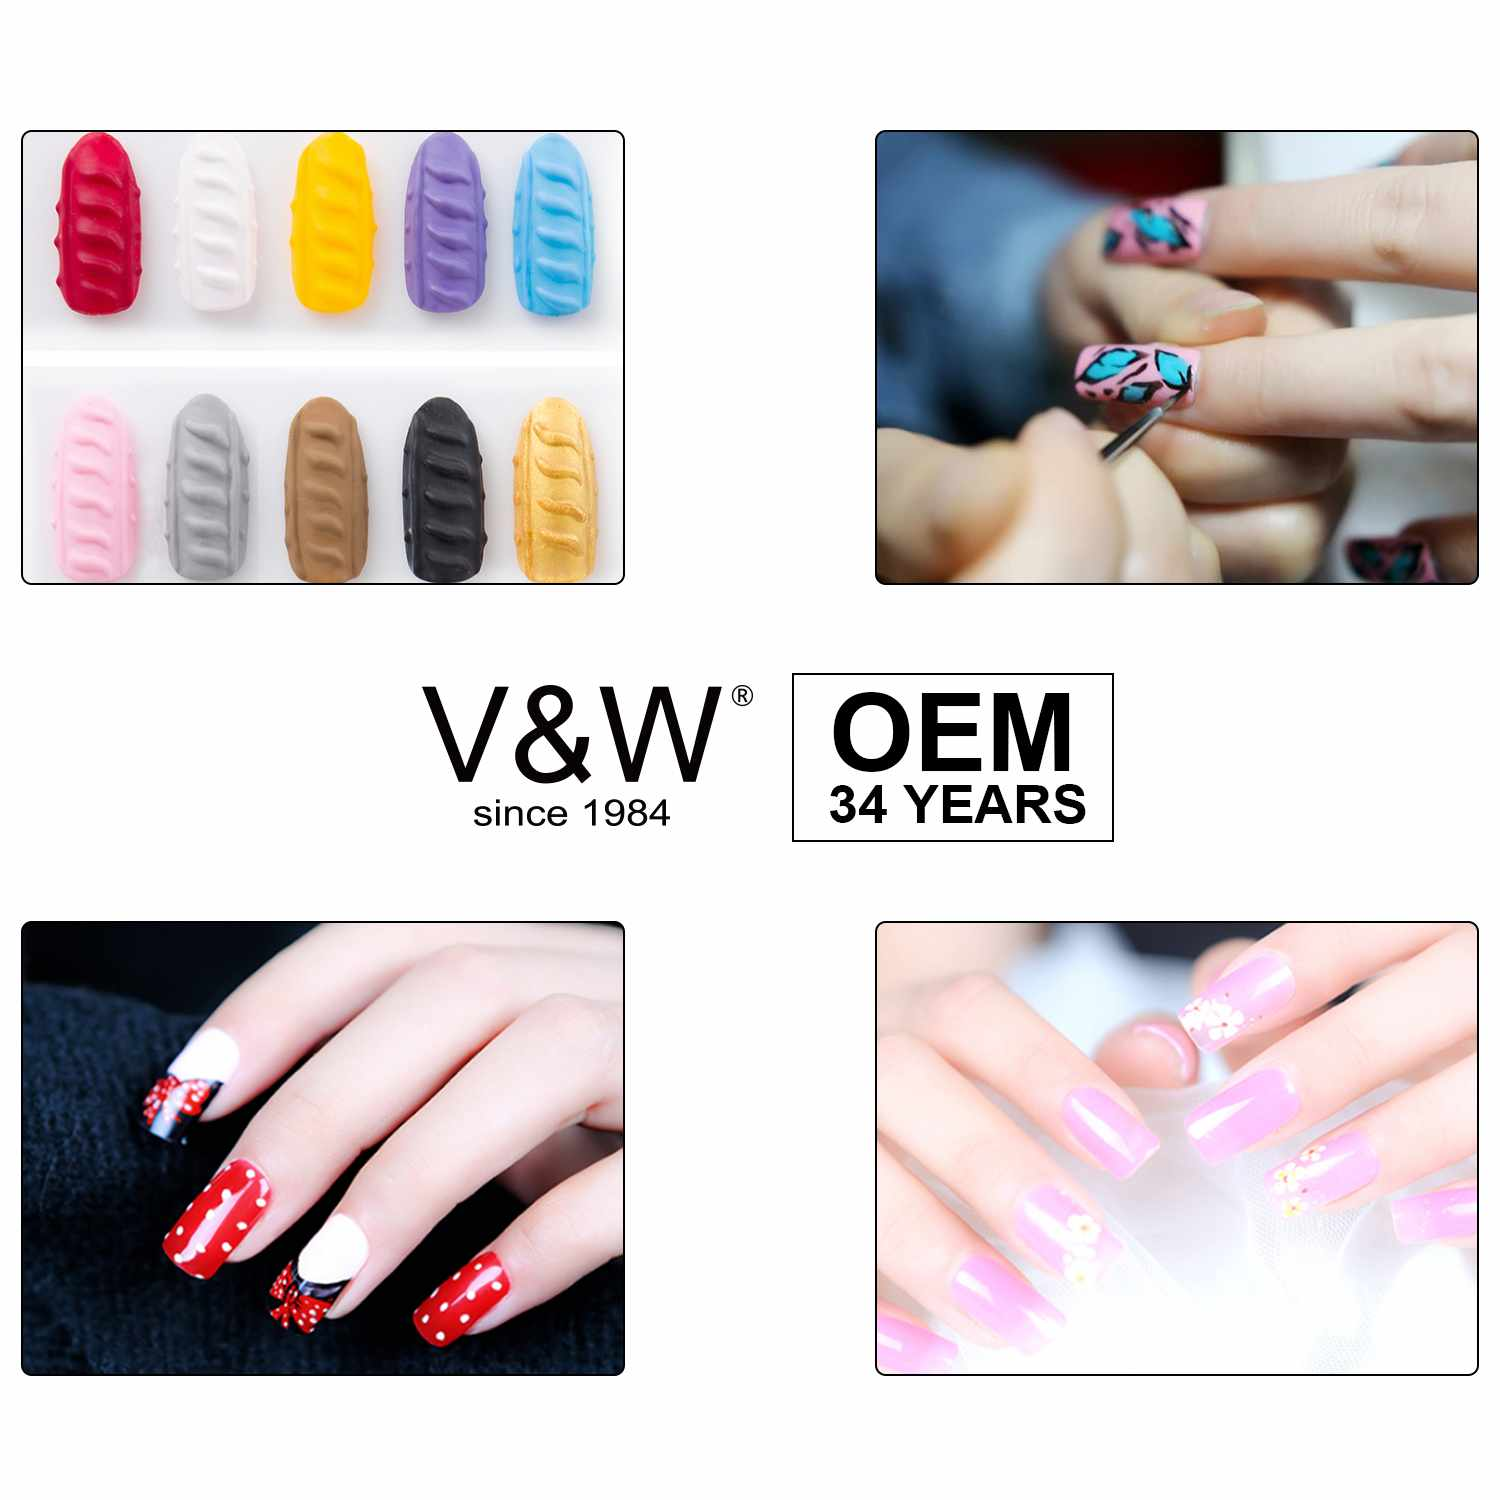 VW-uv gel nail set ,blue nail polish in bulk | VW